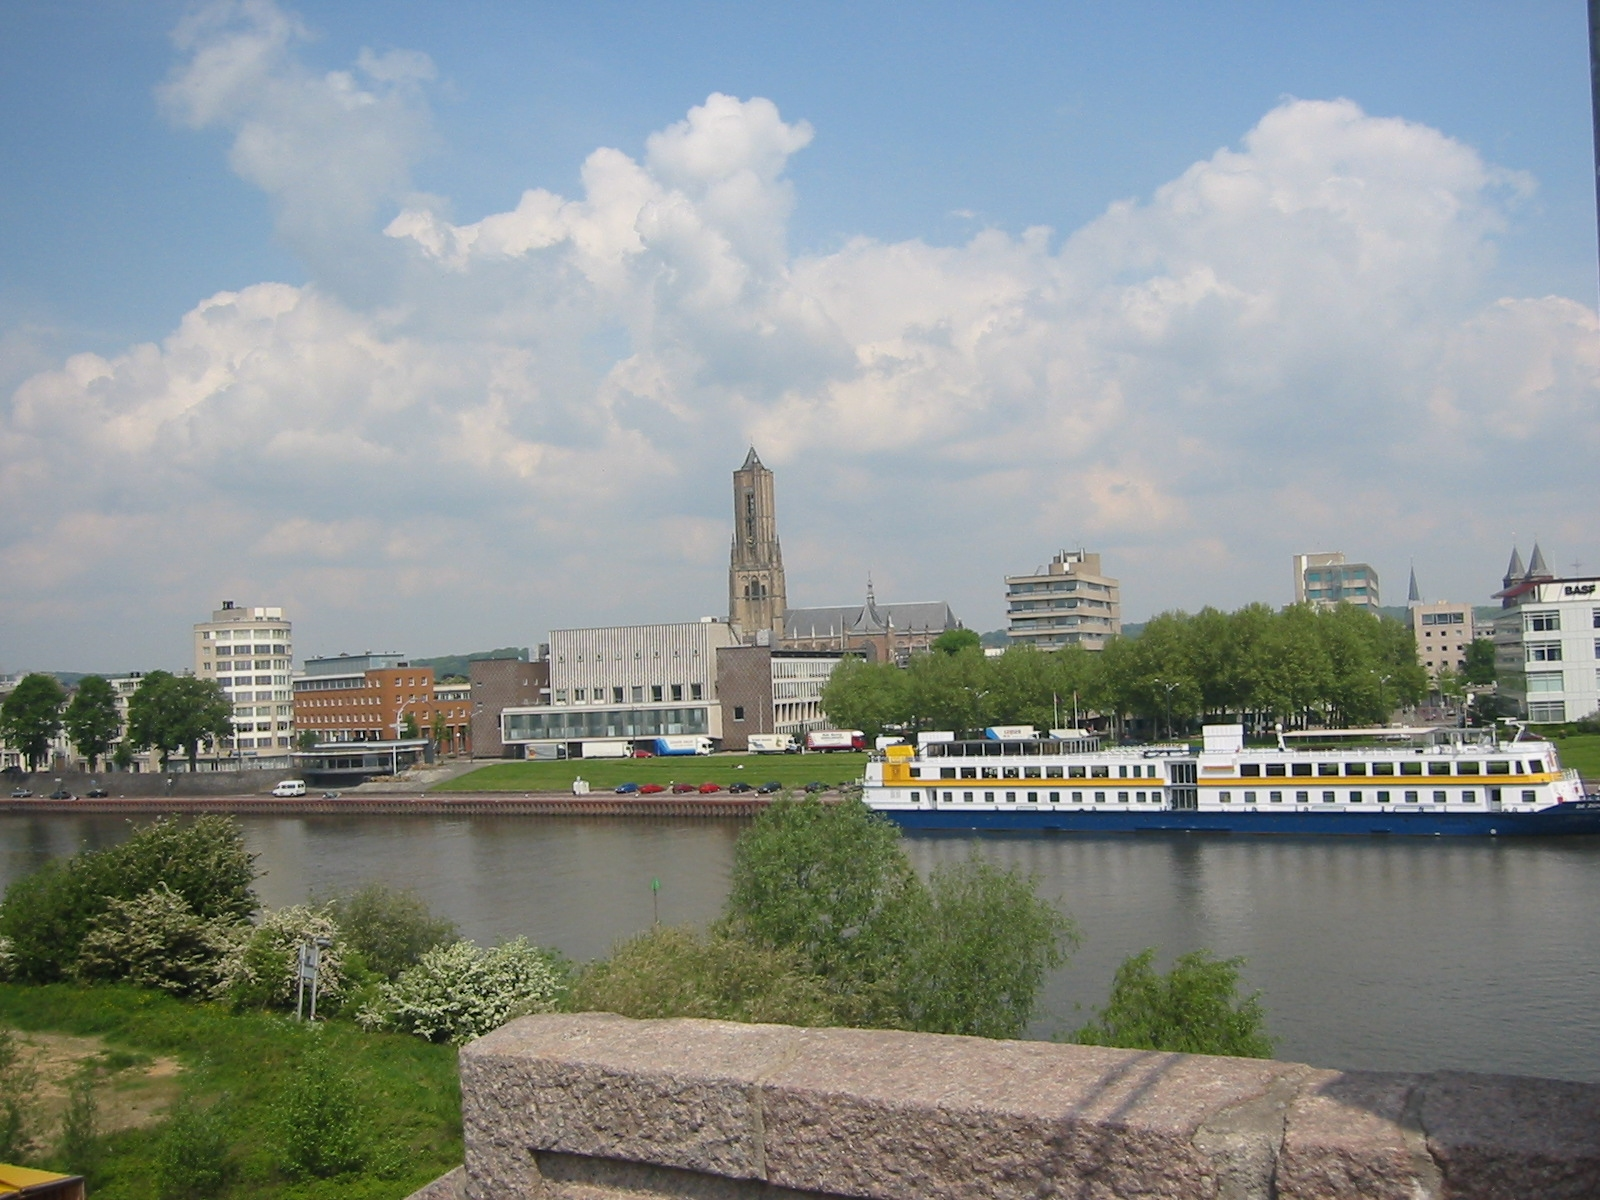 Arnhem Netherlands  City new picture : Original file ‎ 1,600 × 1,200 pixels, file size: 870 KB, MIME type ...